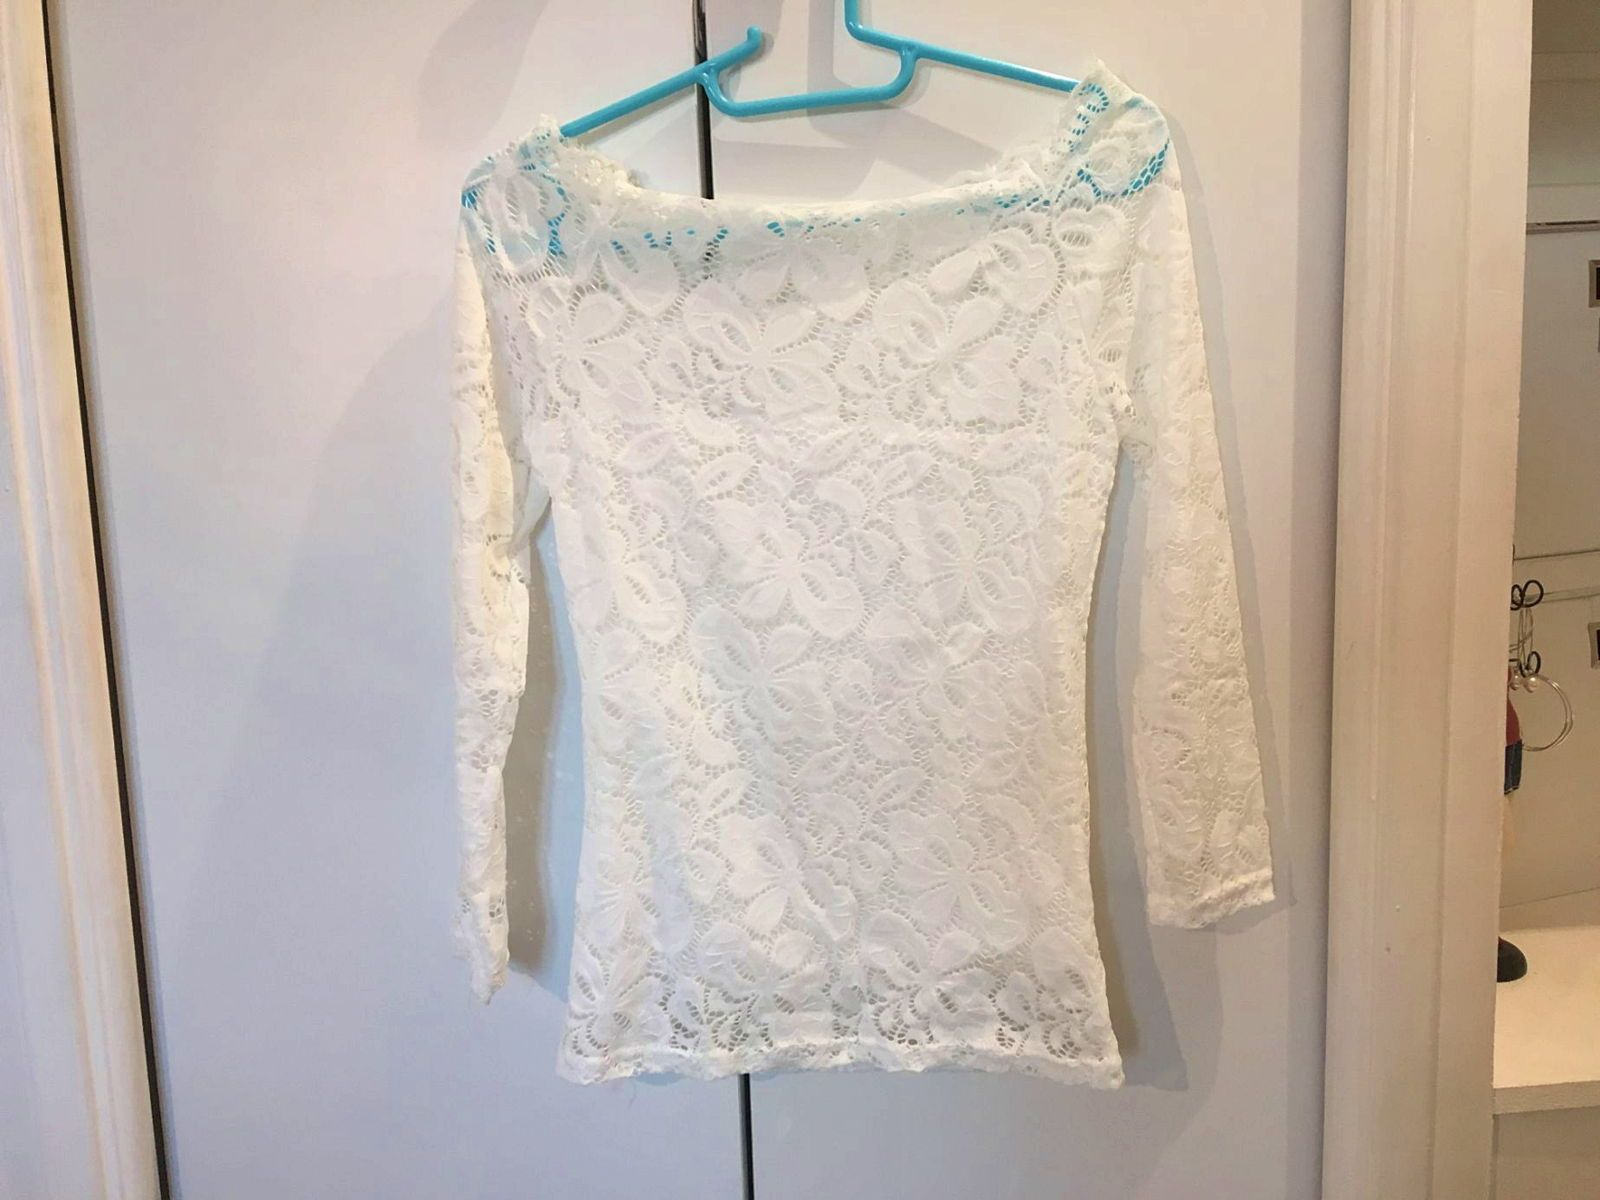 Vends top blanc taille 36(XS) neuf